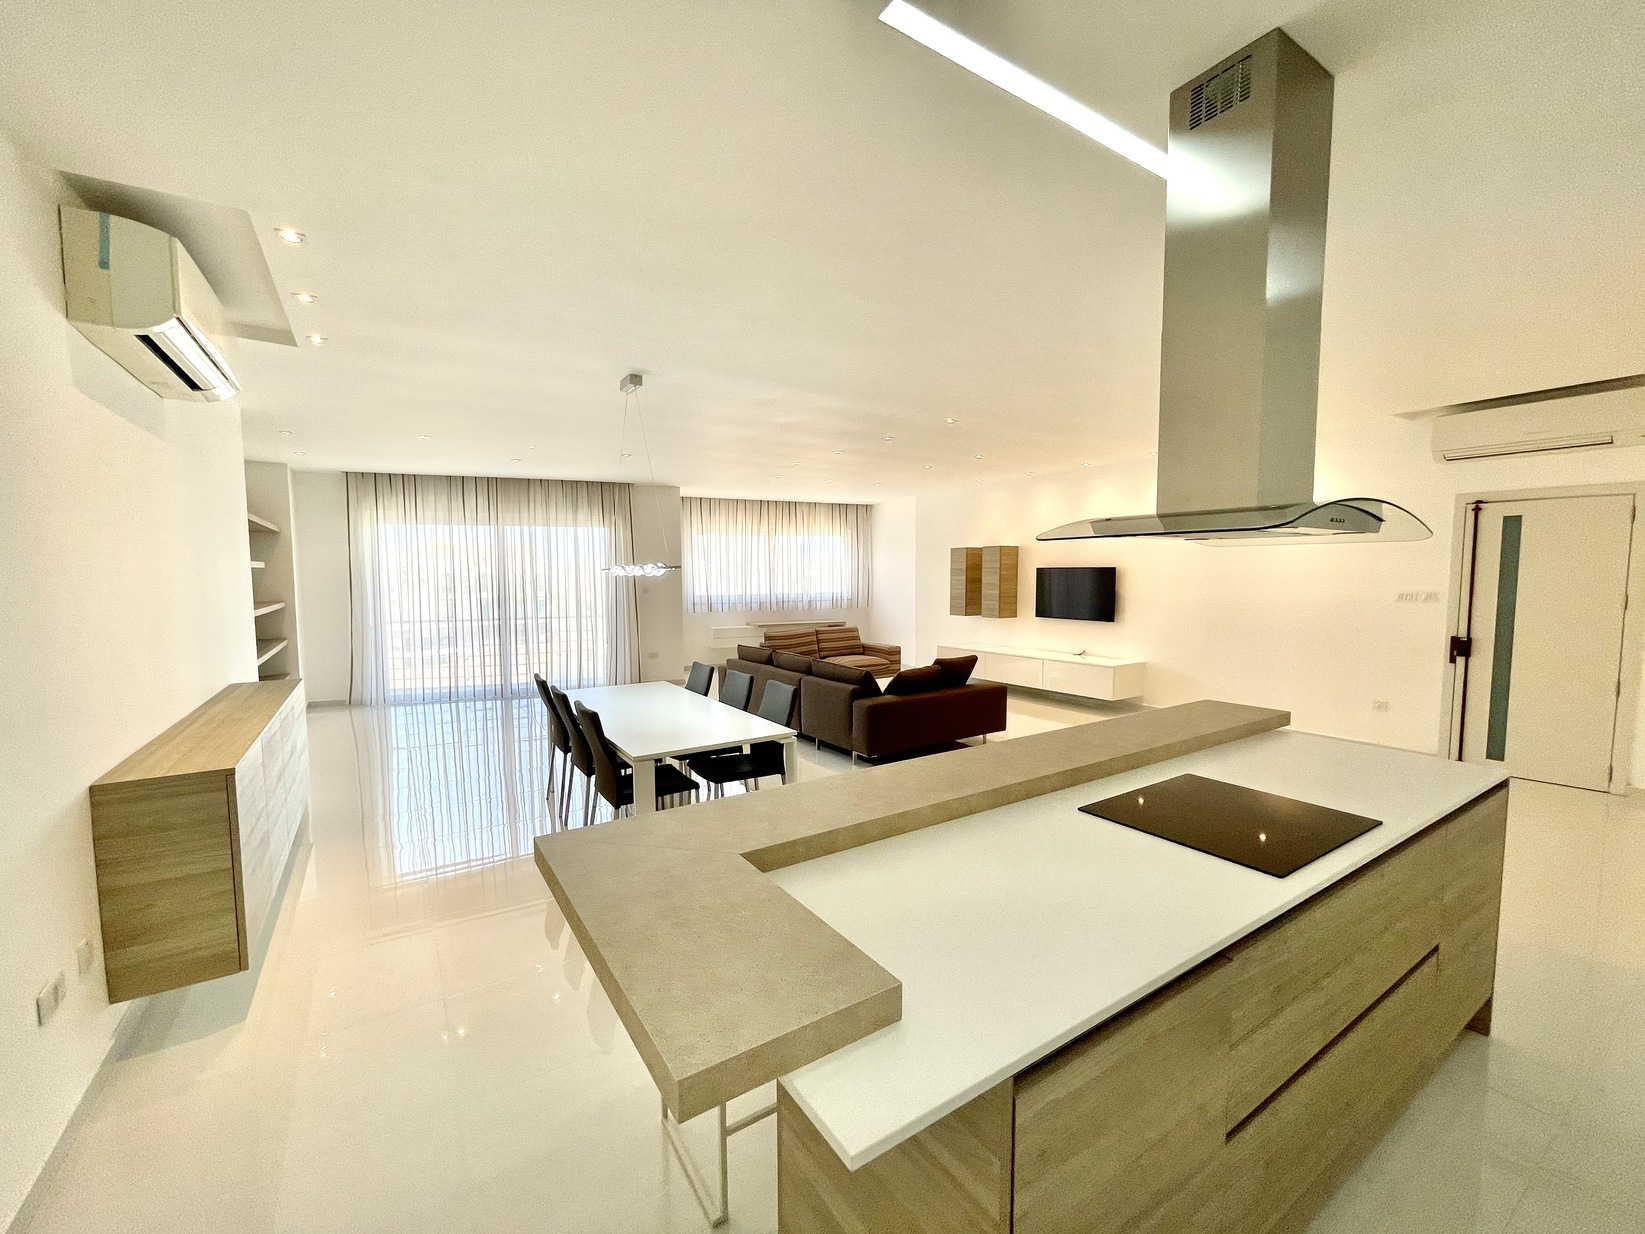 3 bed Apartment For Rent in Zejtun, Zejtun - thumb 2